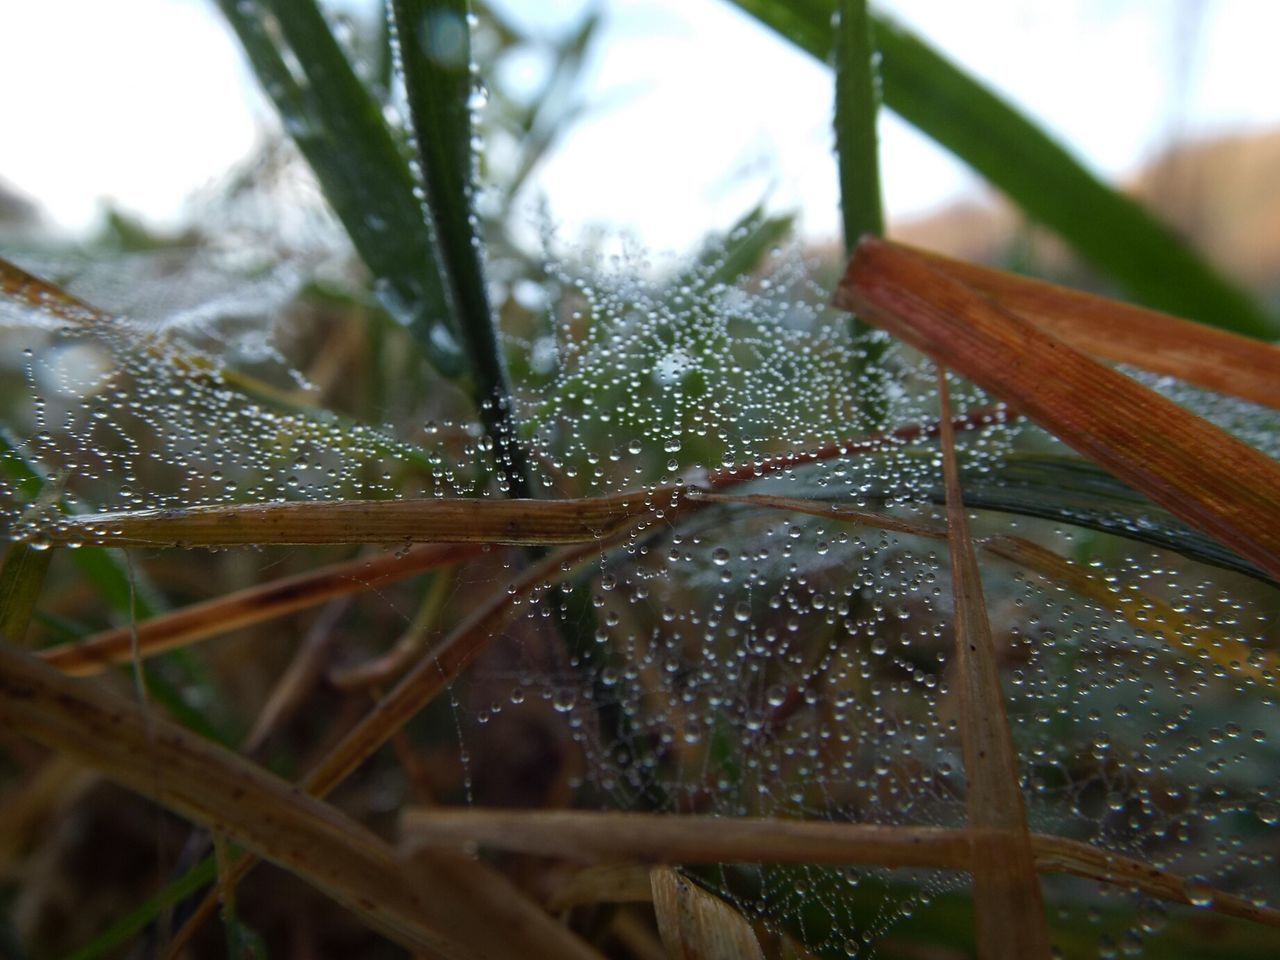 nature, spider web, drop, close-up, beauty in nature, web, day, growth, focus on foreground, no people, outdoors, plant, green color, water, fragility, freshness